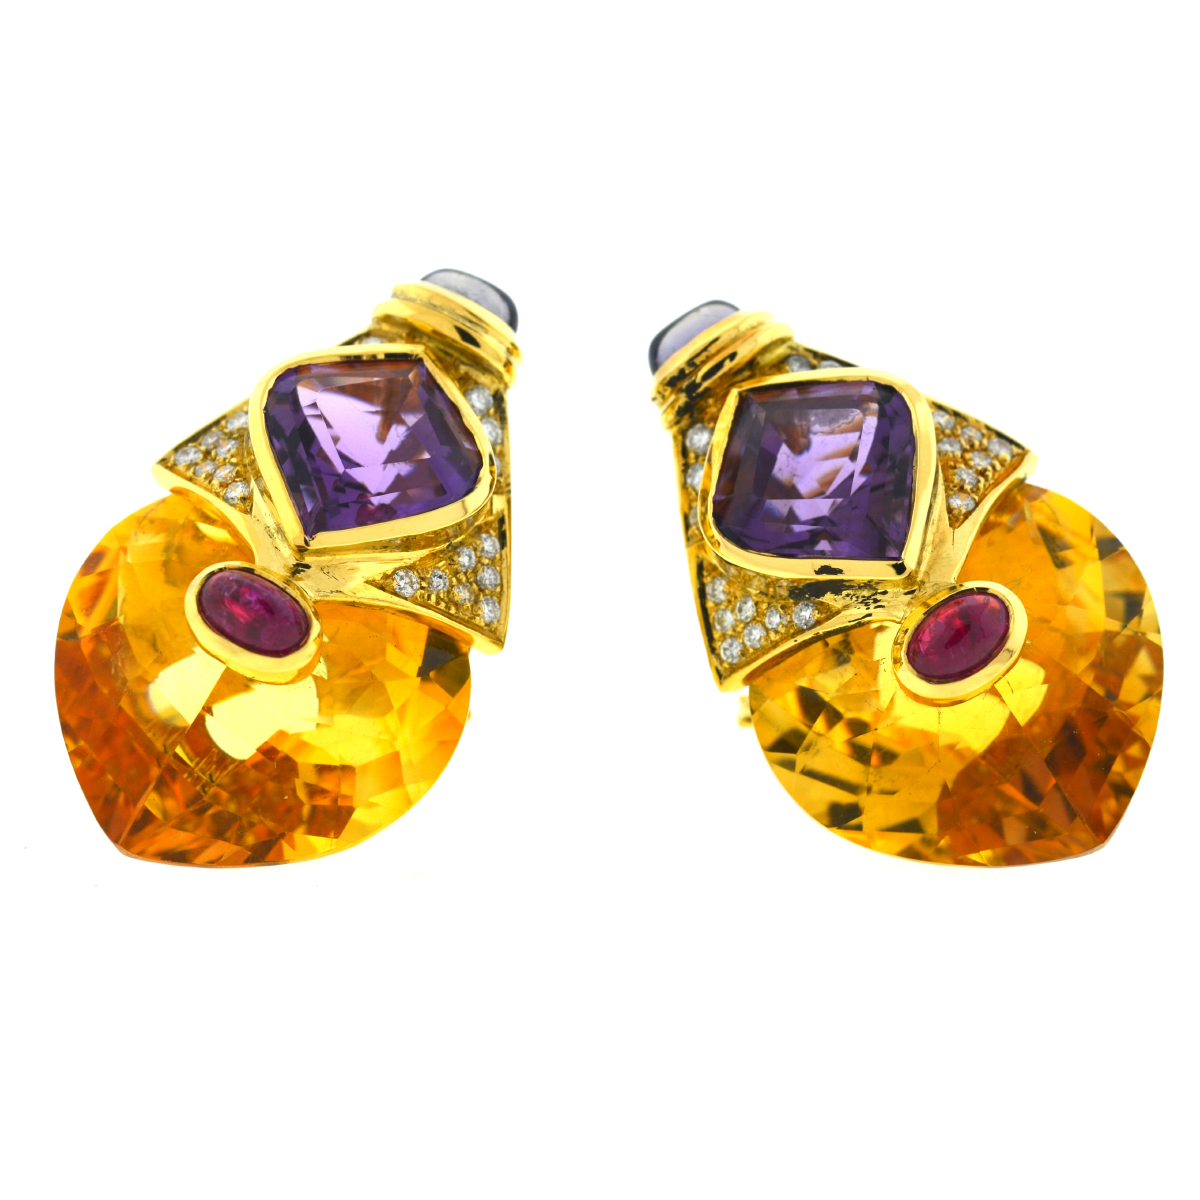 18k Yellow Gold Diamond Citrine Amethyst & Sapphire Cabochon Clip Earrings